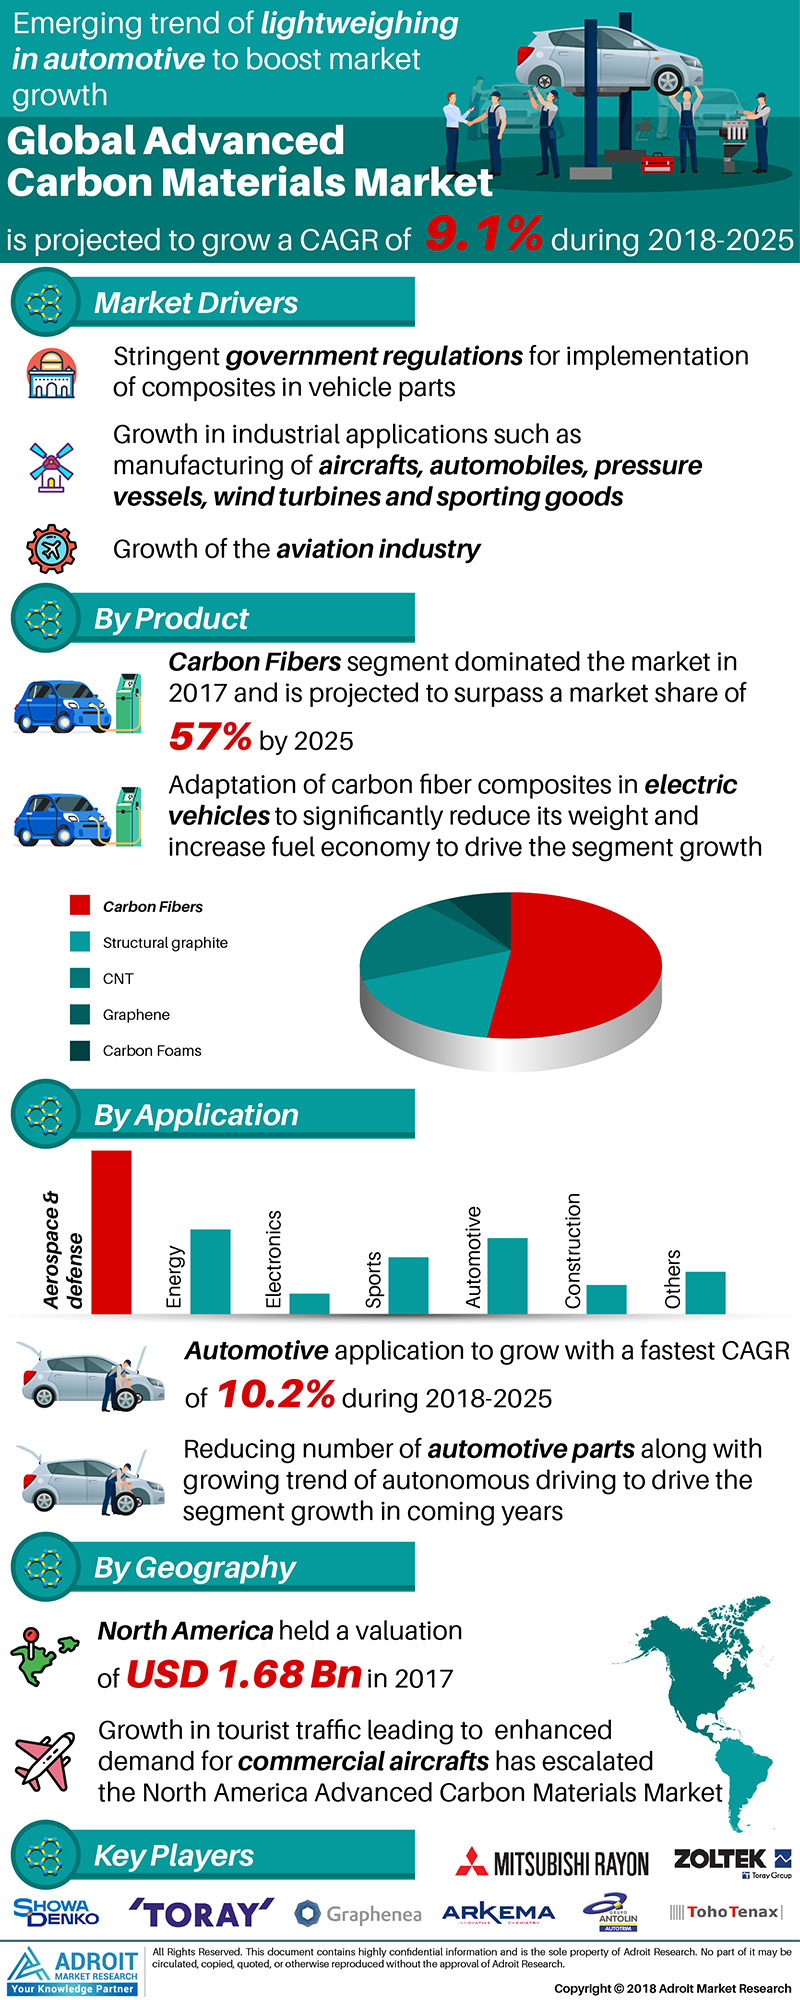 Global Advanced Carbon Material Market Size 2017 By Product, Applications, Region and Forecast 2018 to 2025